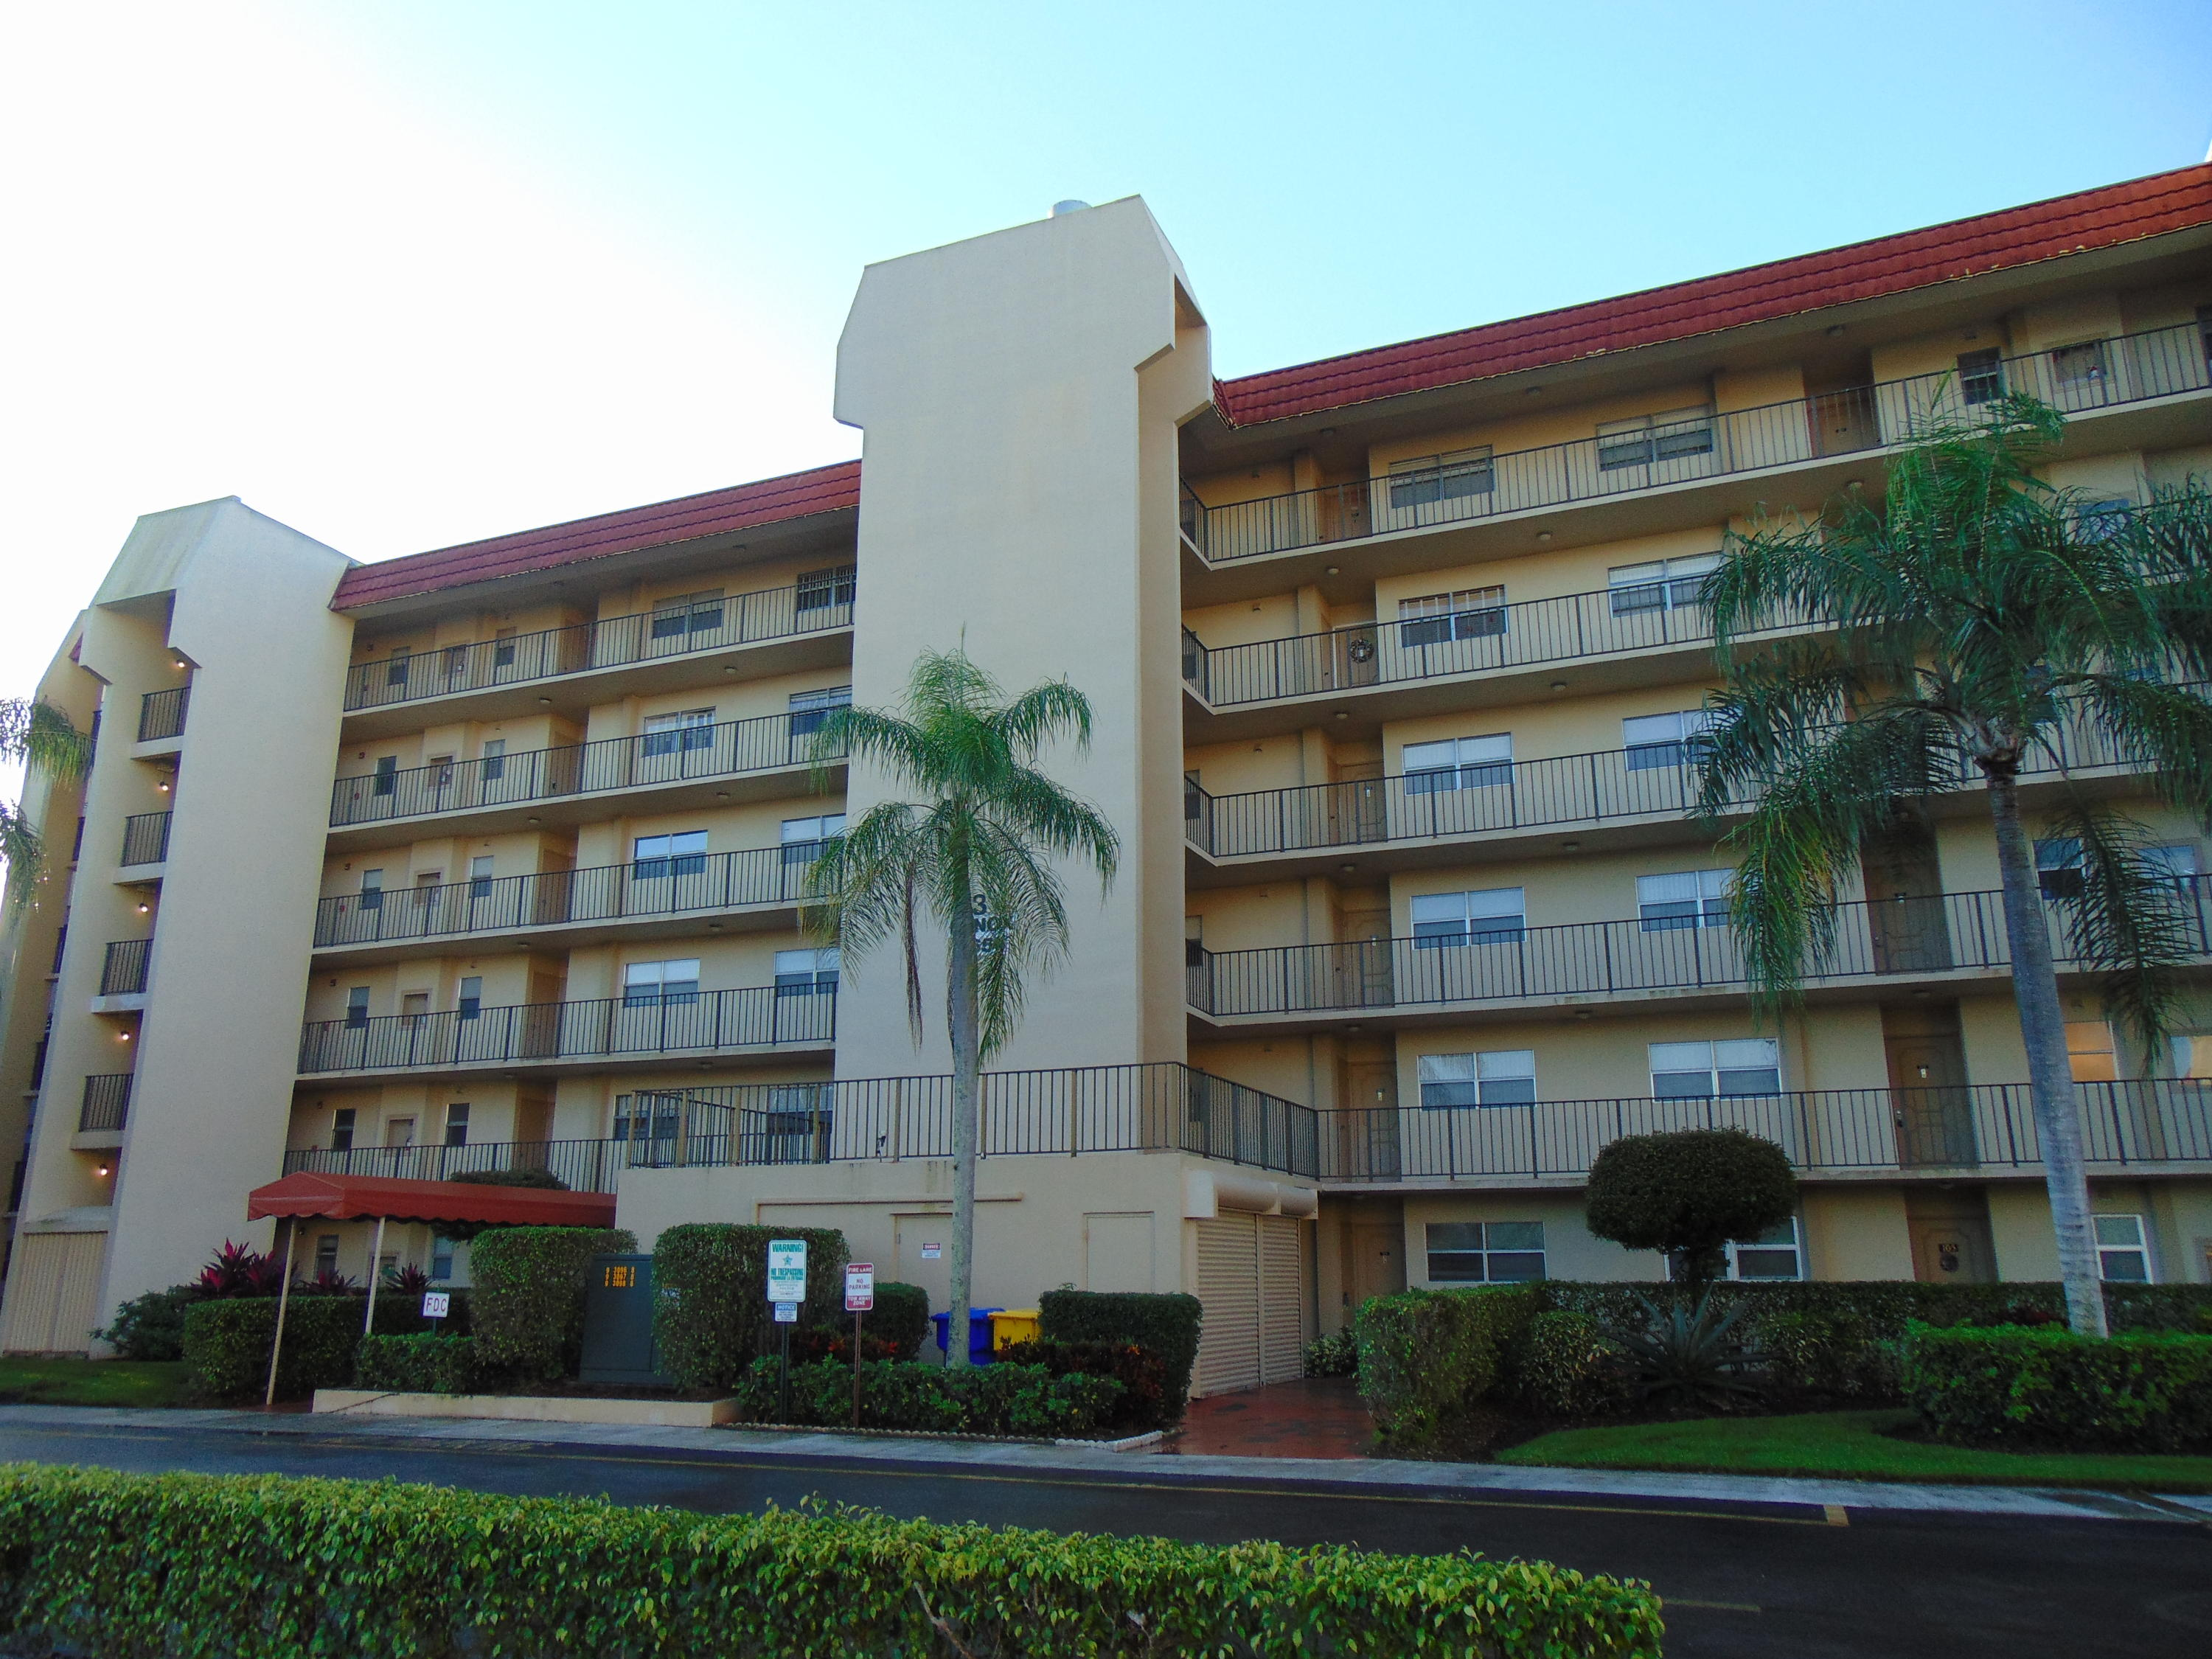 DO NOT MISS THE CHANCE TO OWN THIS TILED 1ST FLOOR CONDO WITH A SCREENED PATIO +  SOUTH FACING VIEWS OF THE GOLF COURSE. THE CONDO FEATURES A WALK-IN SHOWER & WASHER/DRYER.  PRICED FOR CONDITION. CASH ONLY PER SELLER.  CONVENIENTLY LOCATED ACROSS FROM THE CLUBHOUSE, 2 POOLS, TENNIS, PAY-AS-YOU-PLAY GOLF.  THE CLUBHOUSE OFFERS MEL'S BISTRO WITH FOOD & ENTERTAINMENT, A GYM,MOVIES, SHOWS, TRIPS, LIBRARY, BILLIARDS, SOCIAL ACTIVITIES, CLASSES.  NO RENTALS THE 1ST 2 YEARS OF OWNERSHIP. AGE RESTRICTIONS.